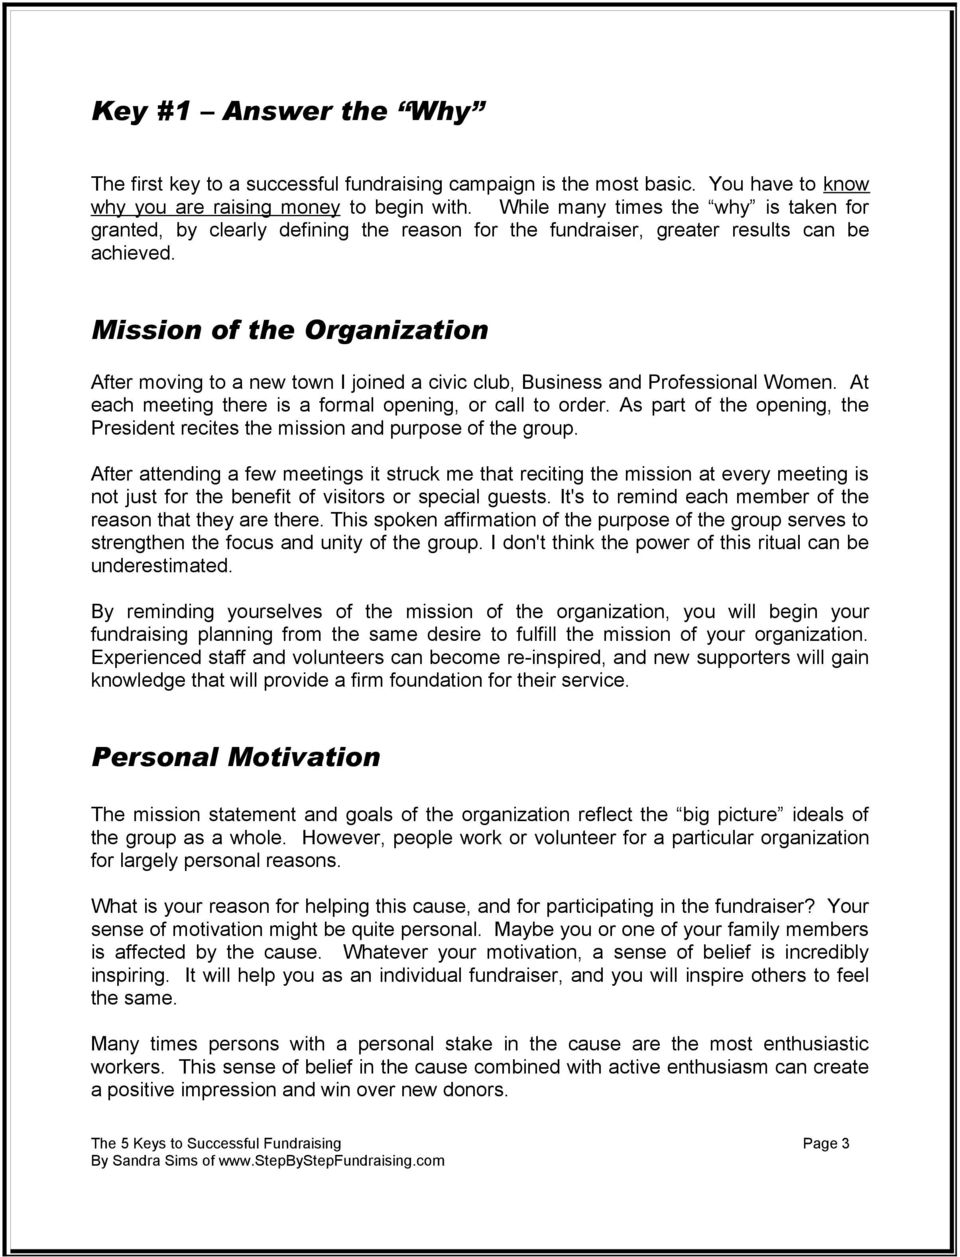 Mission of the Organization After moving to a new town I joined a civic club, Business and Professional Women. At each meeting there is a formal opening, or call to order.